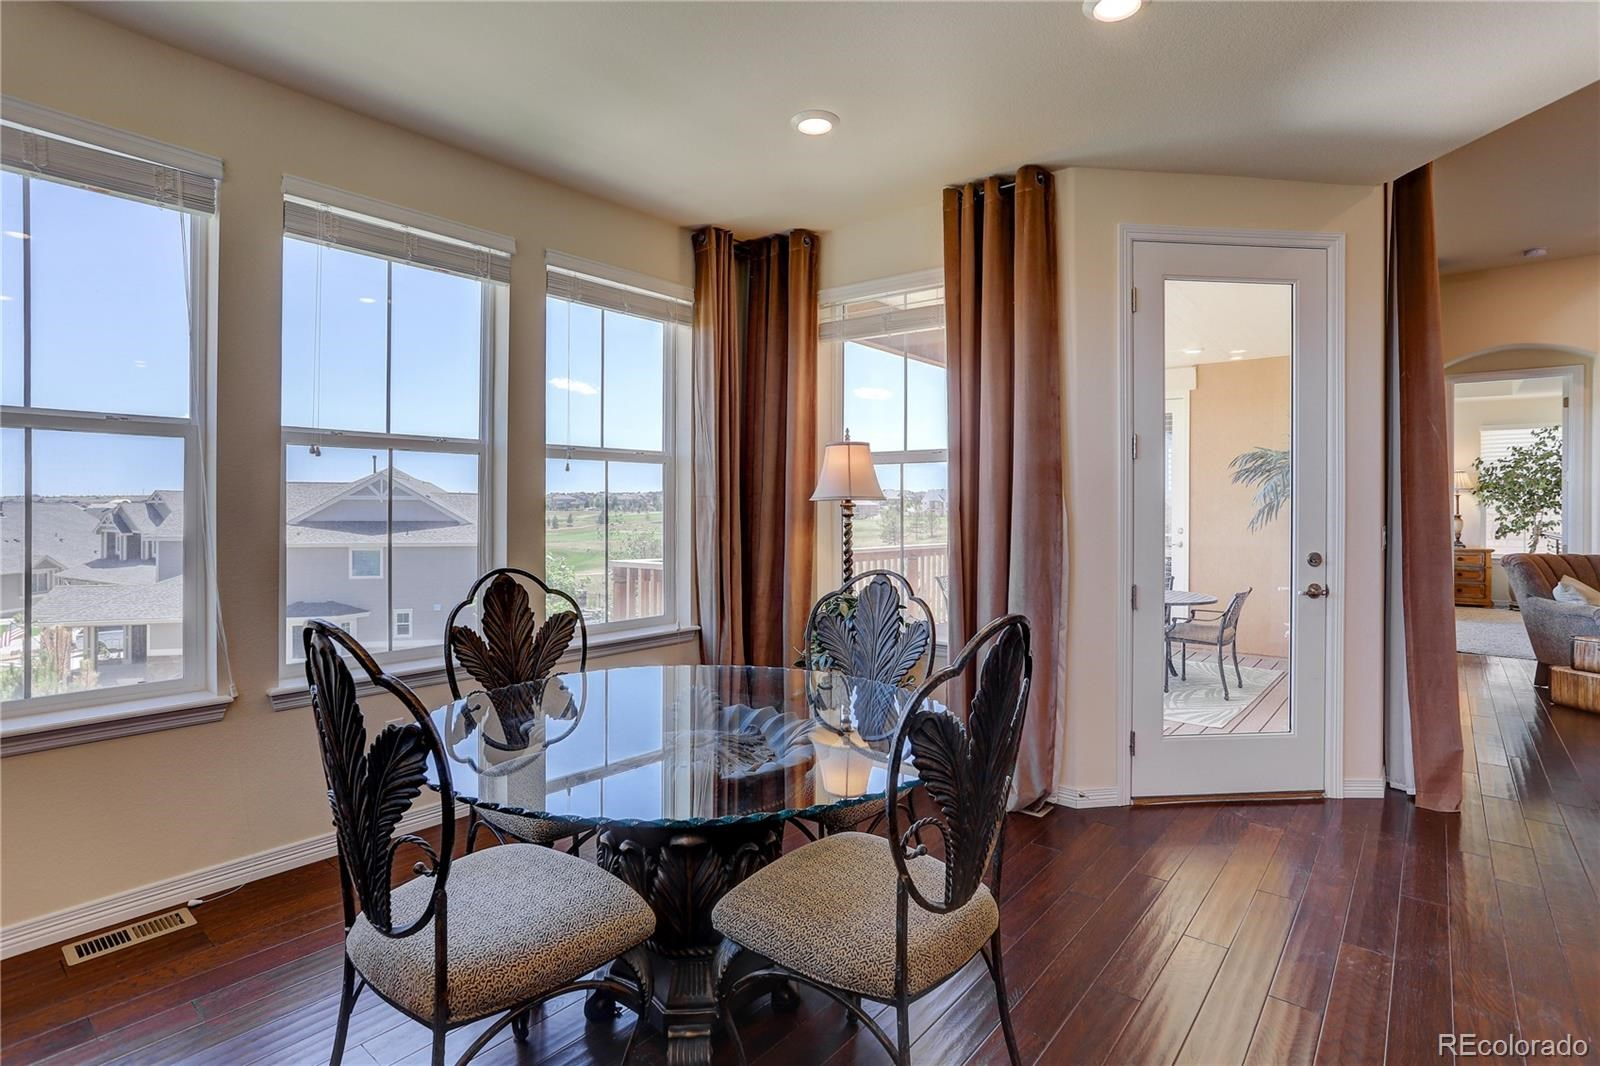 MLS# 8545425 - 14 - 7598 S Country Club Parkway, Aurora, CO 80016